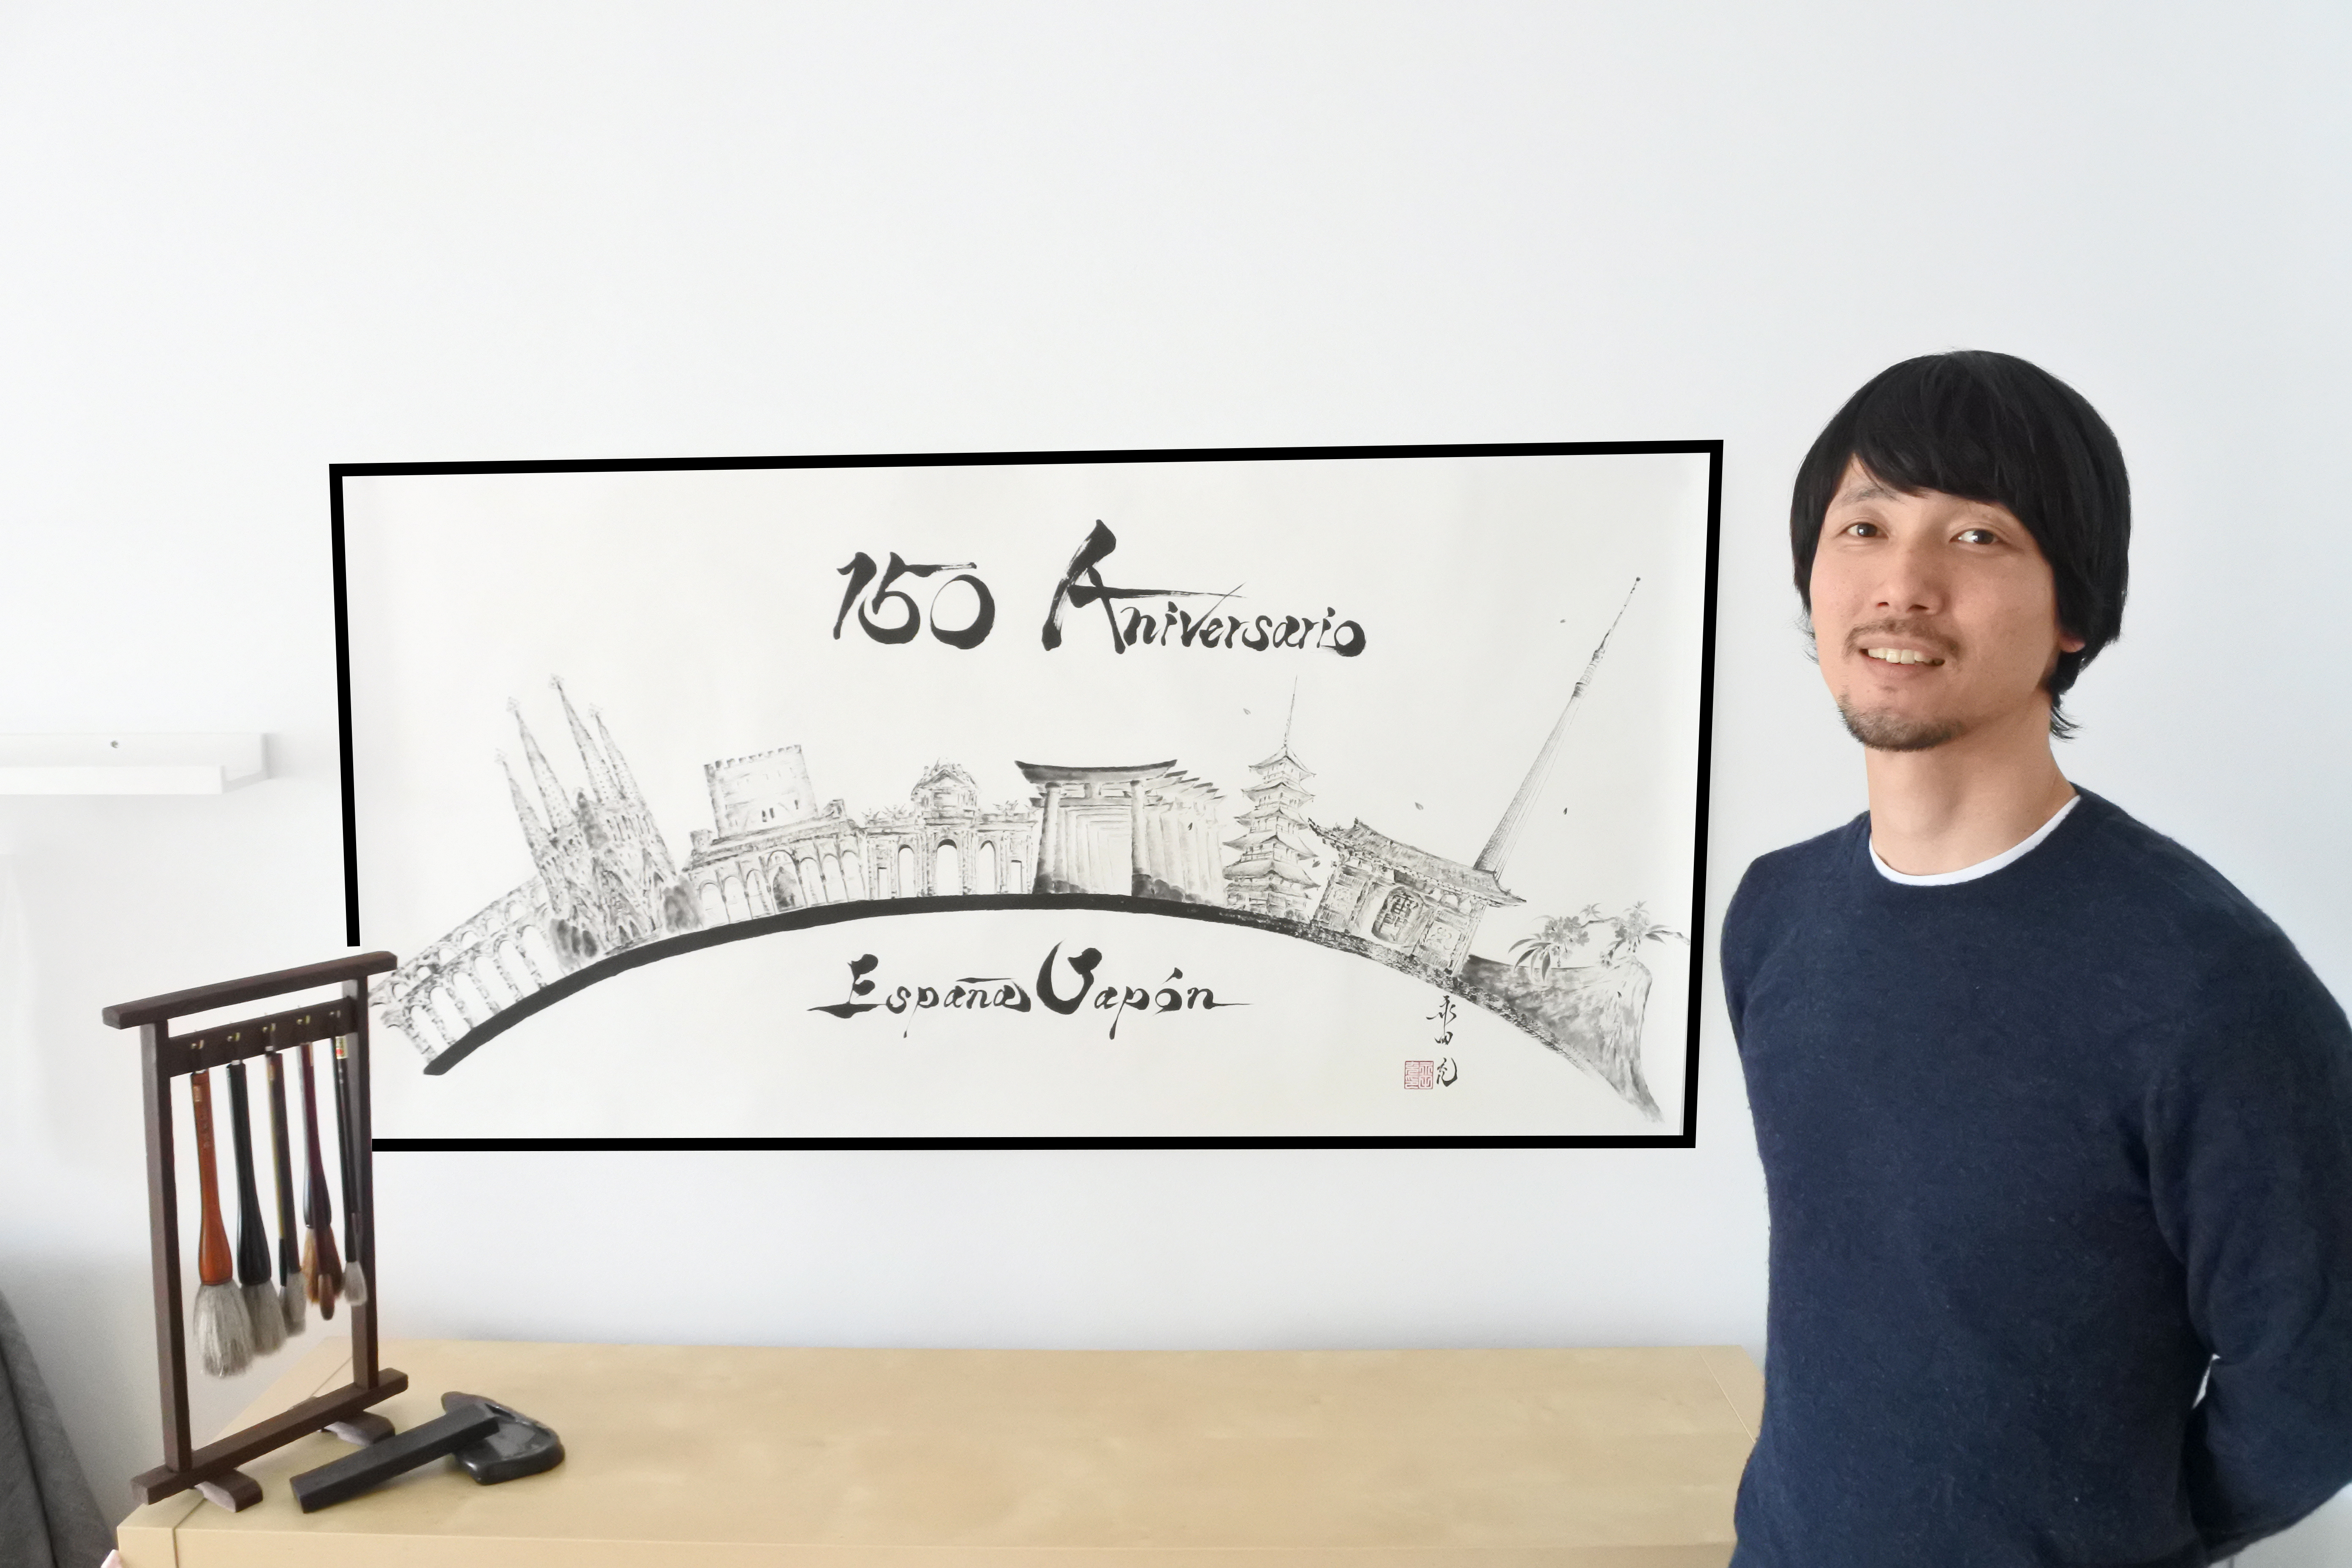 CUSTOM REQUEST FOR THE JAPANESE EMBASSY IN SPAIN 150 YEARS ANIVERSARY